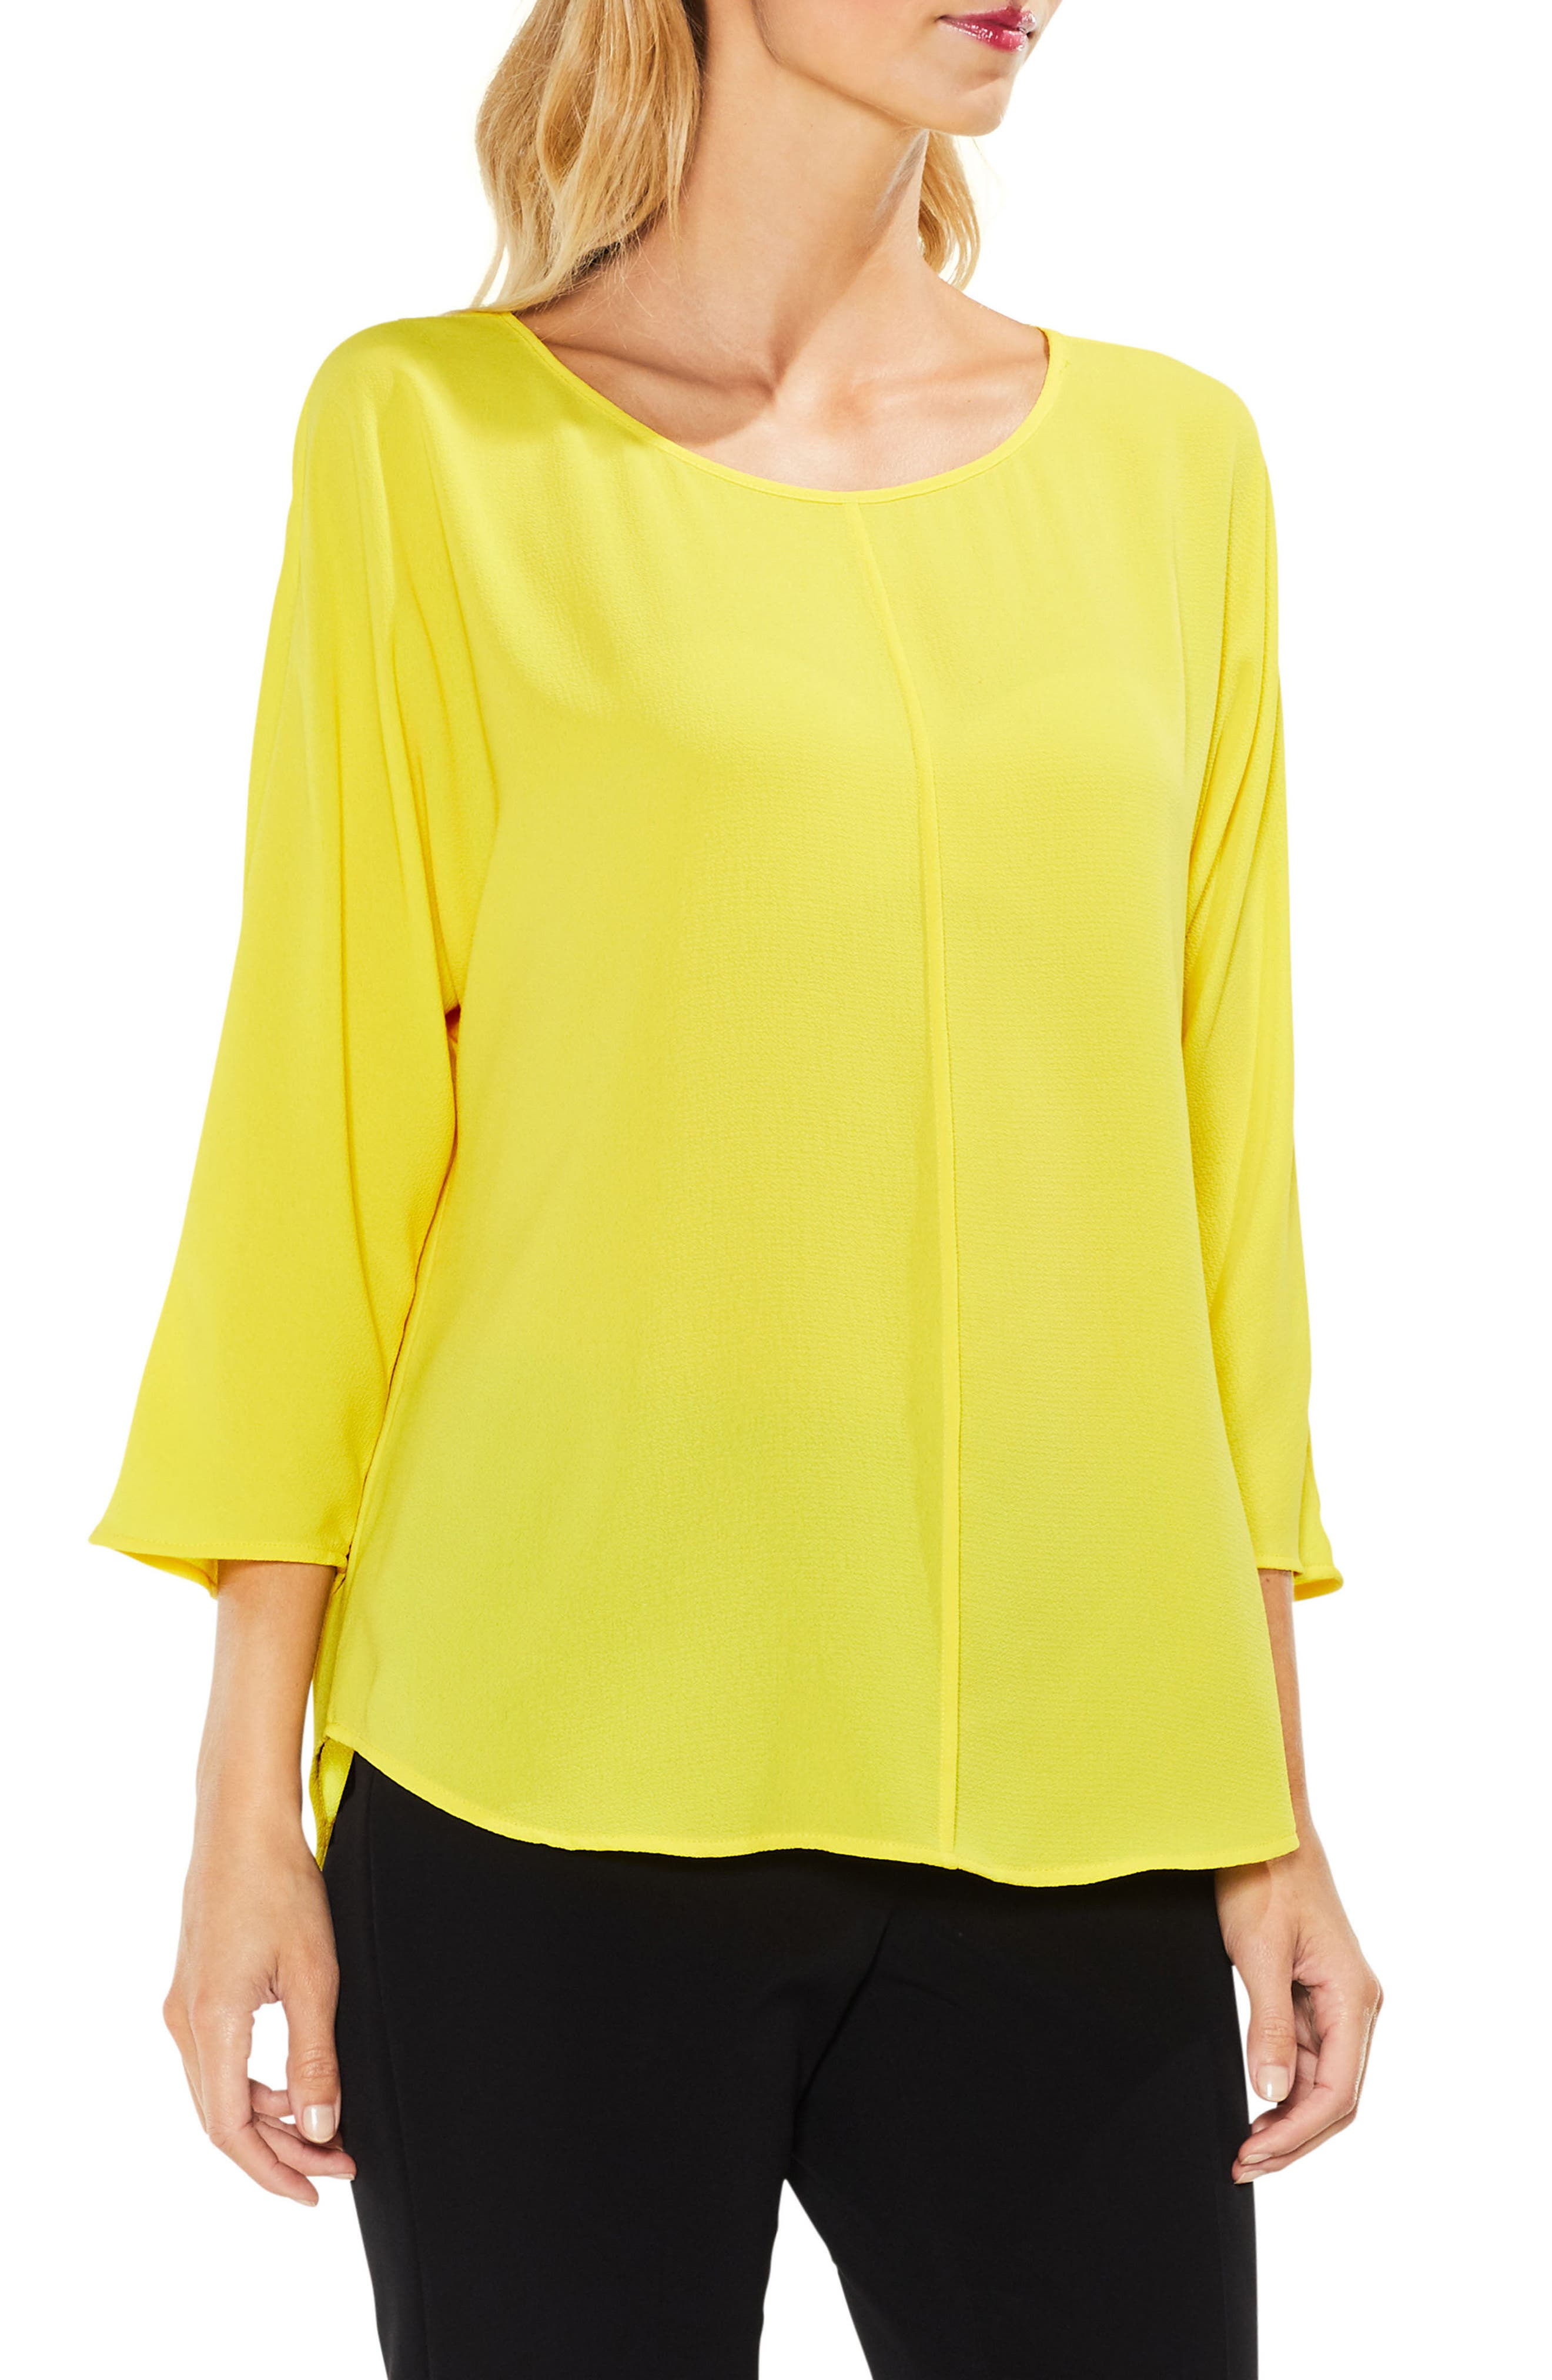 Alternate Image 1 Selected - Vince Camuto Center Seam Blouse